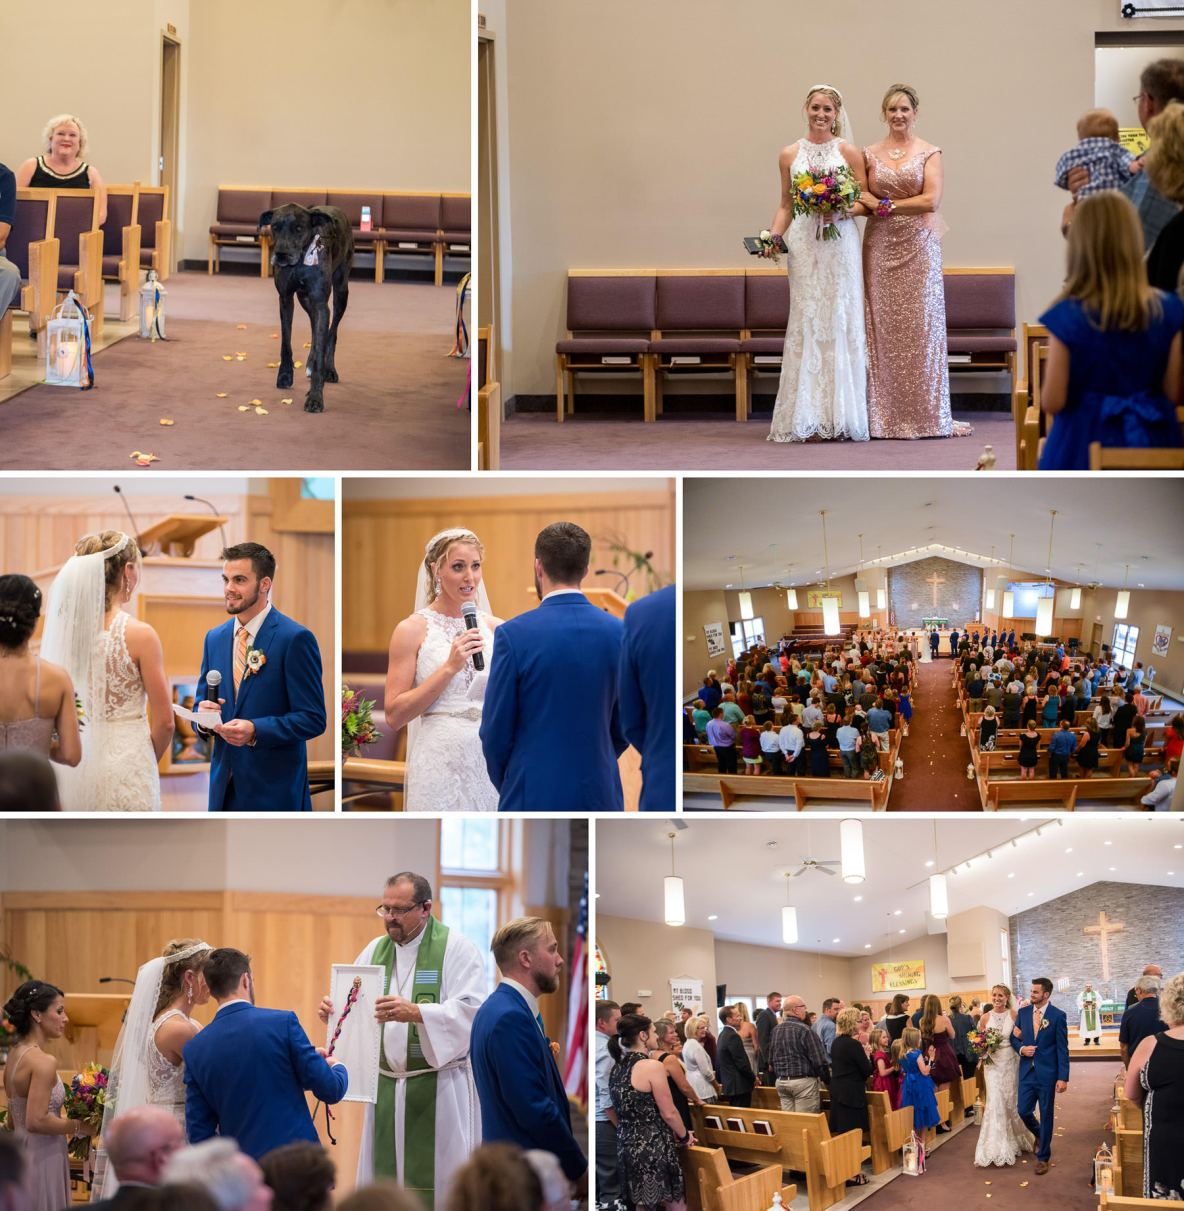 Photo collage of indoor wedding ceremony held in beautiful church.